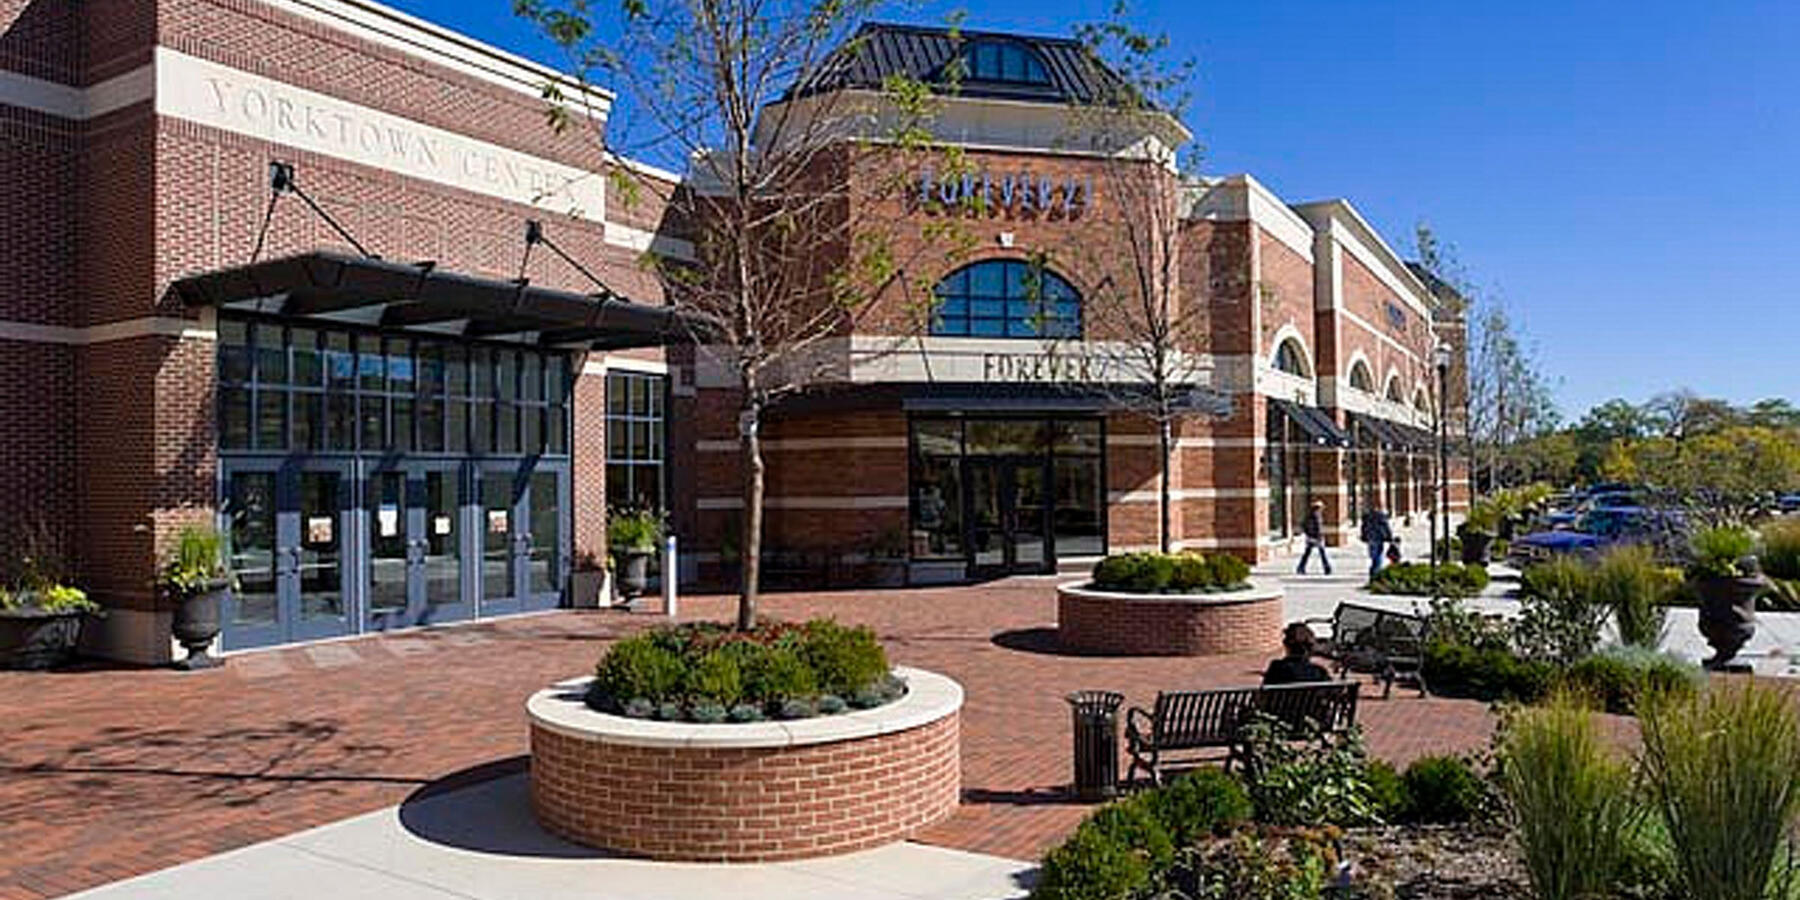 Chicago Retail Construction - Yorktown Center Expansion exterior seating and landscaping